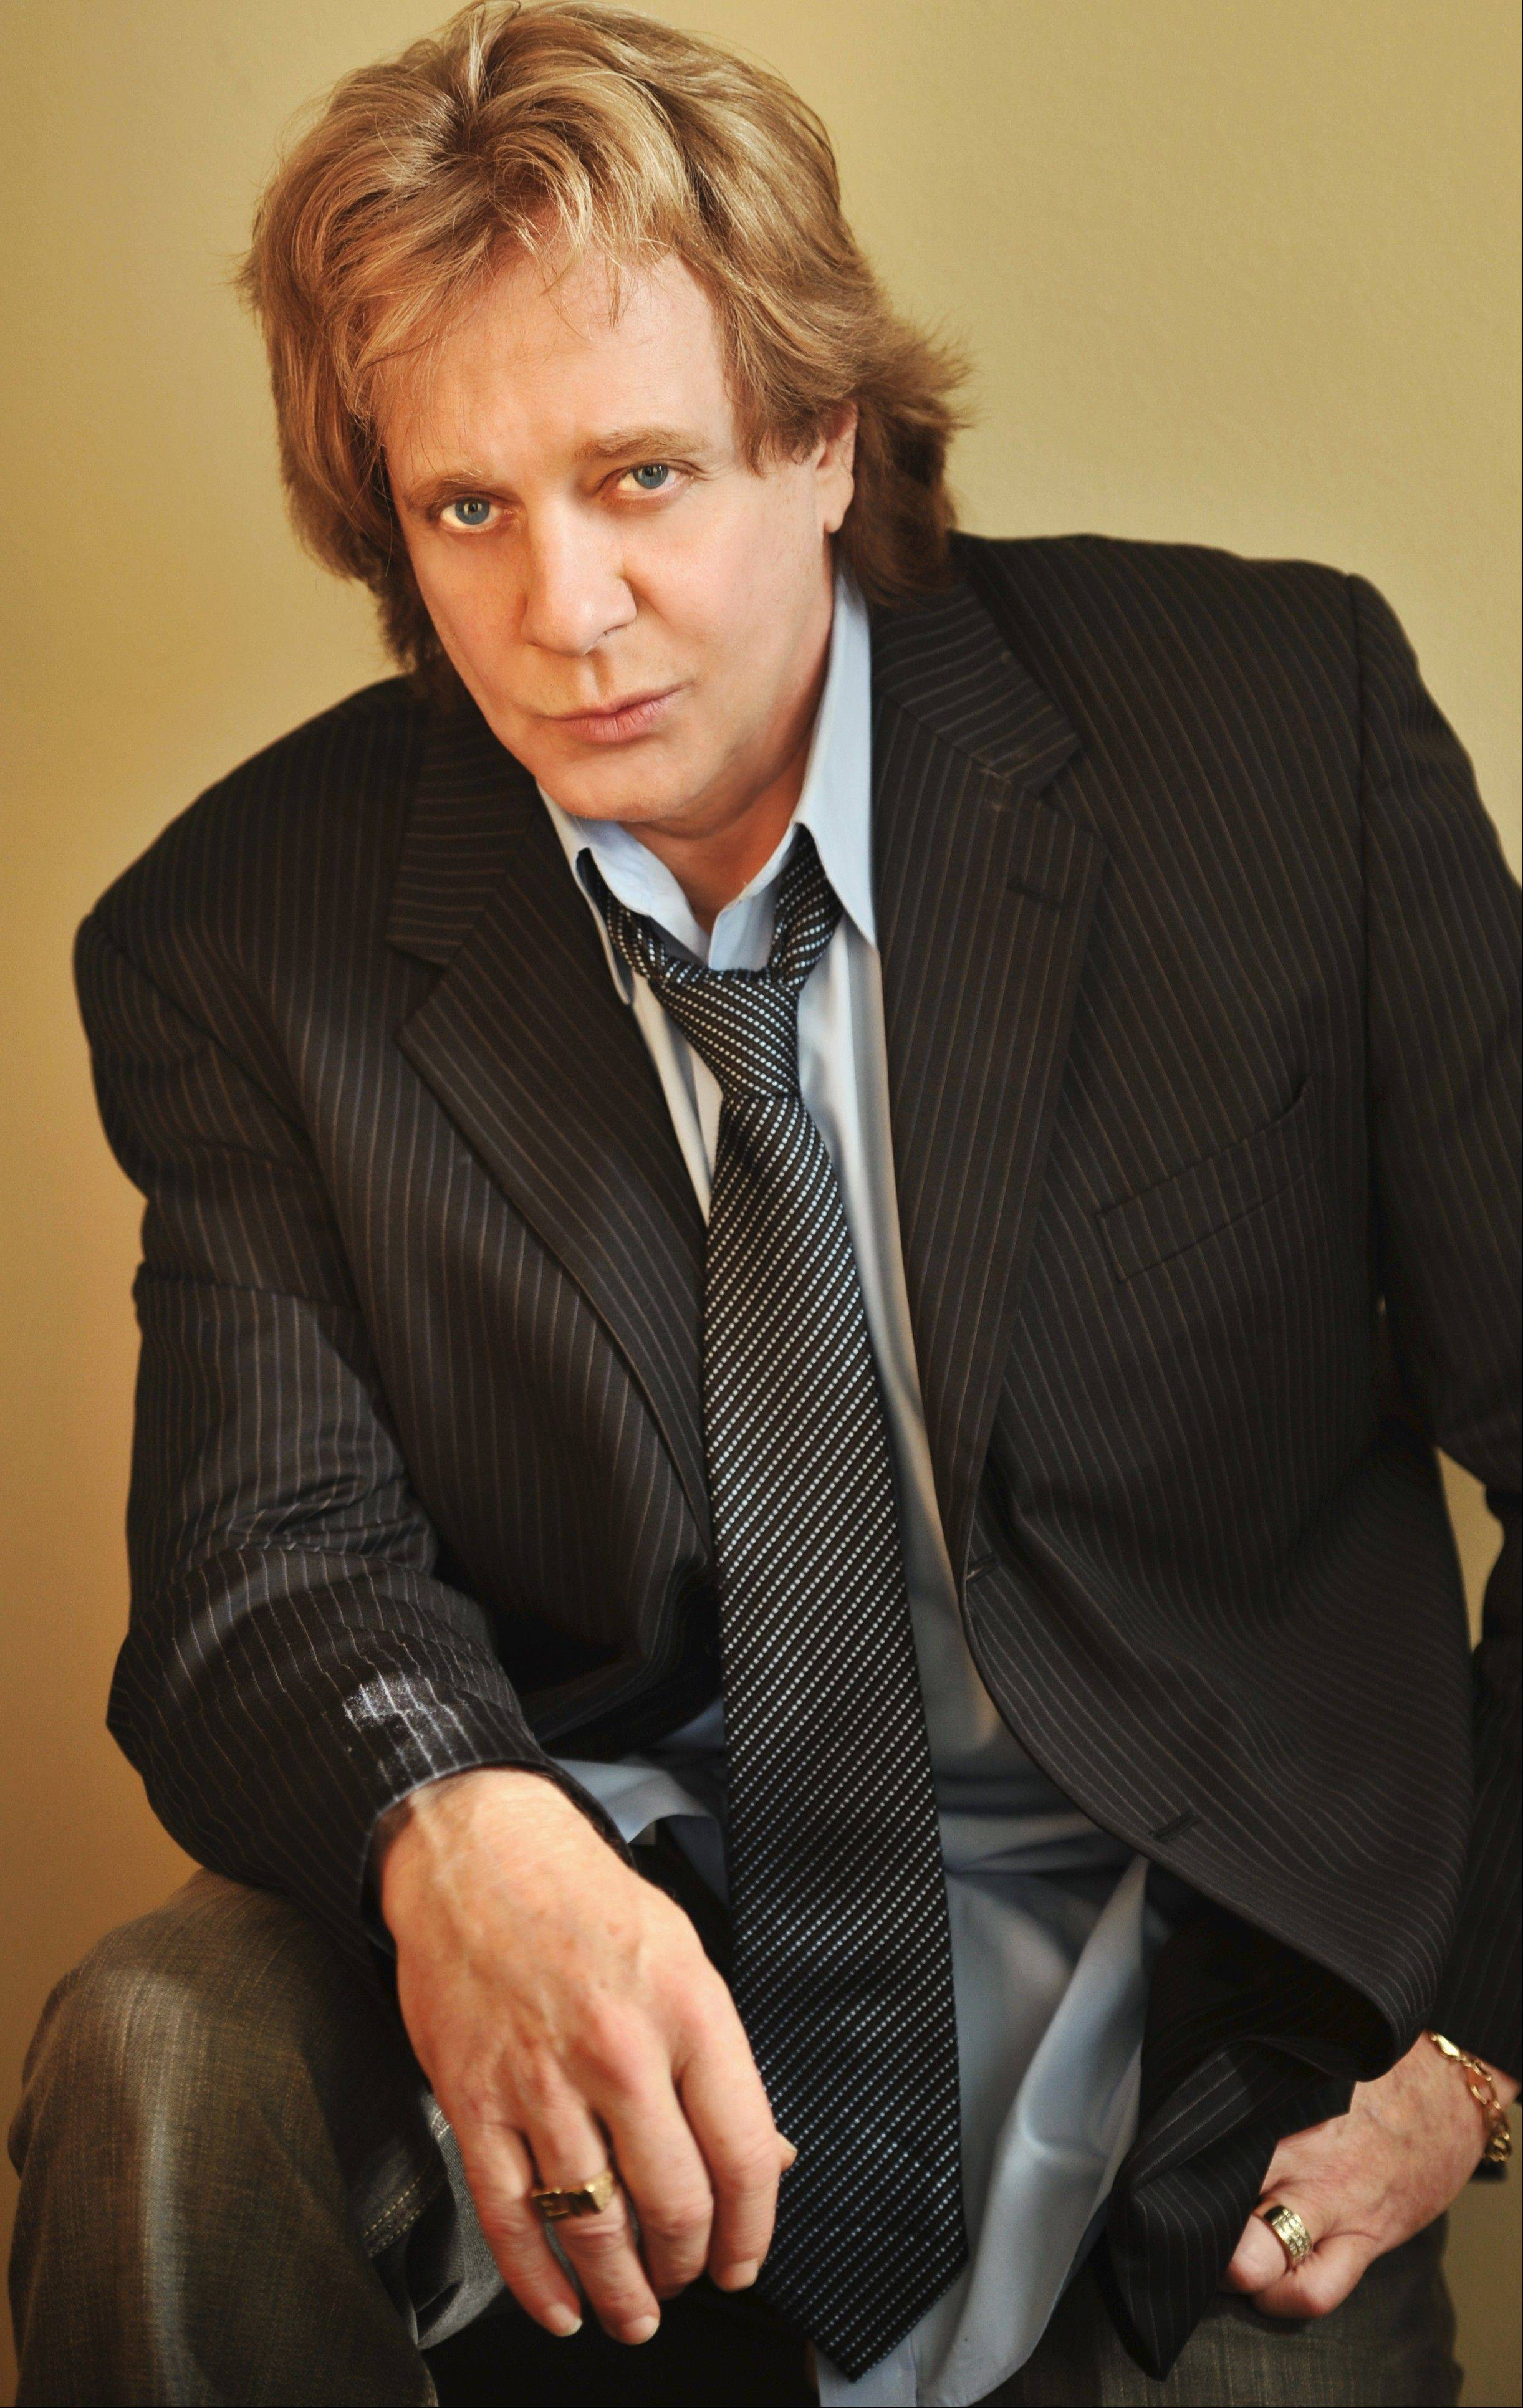 Eddie Money will play the Arcada Theatre in St. Charles in March.